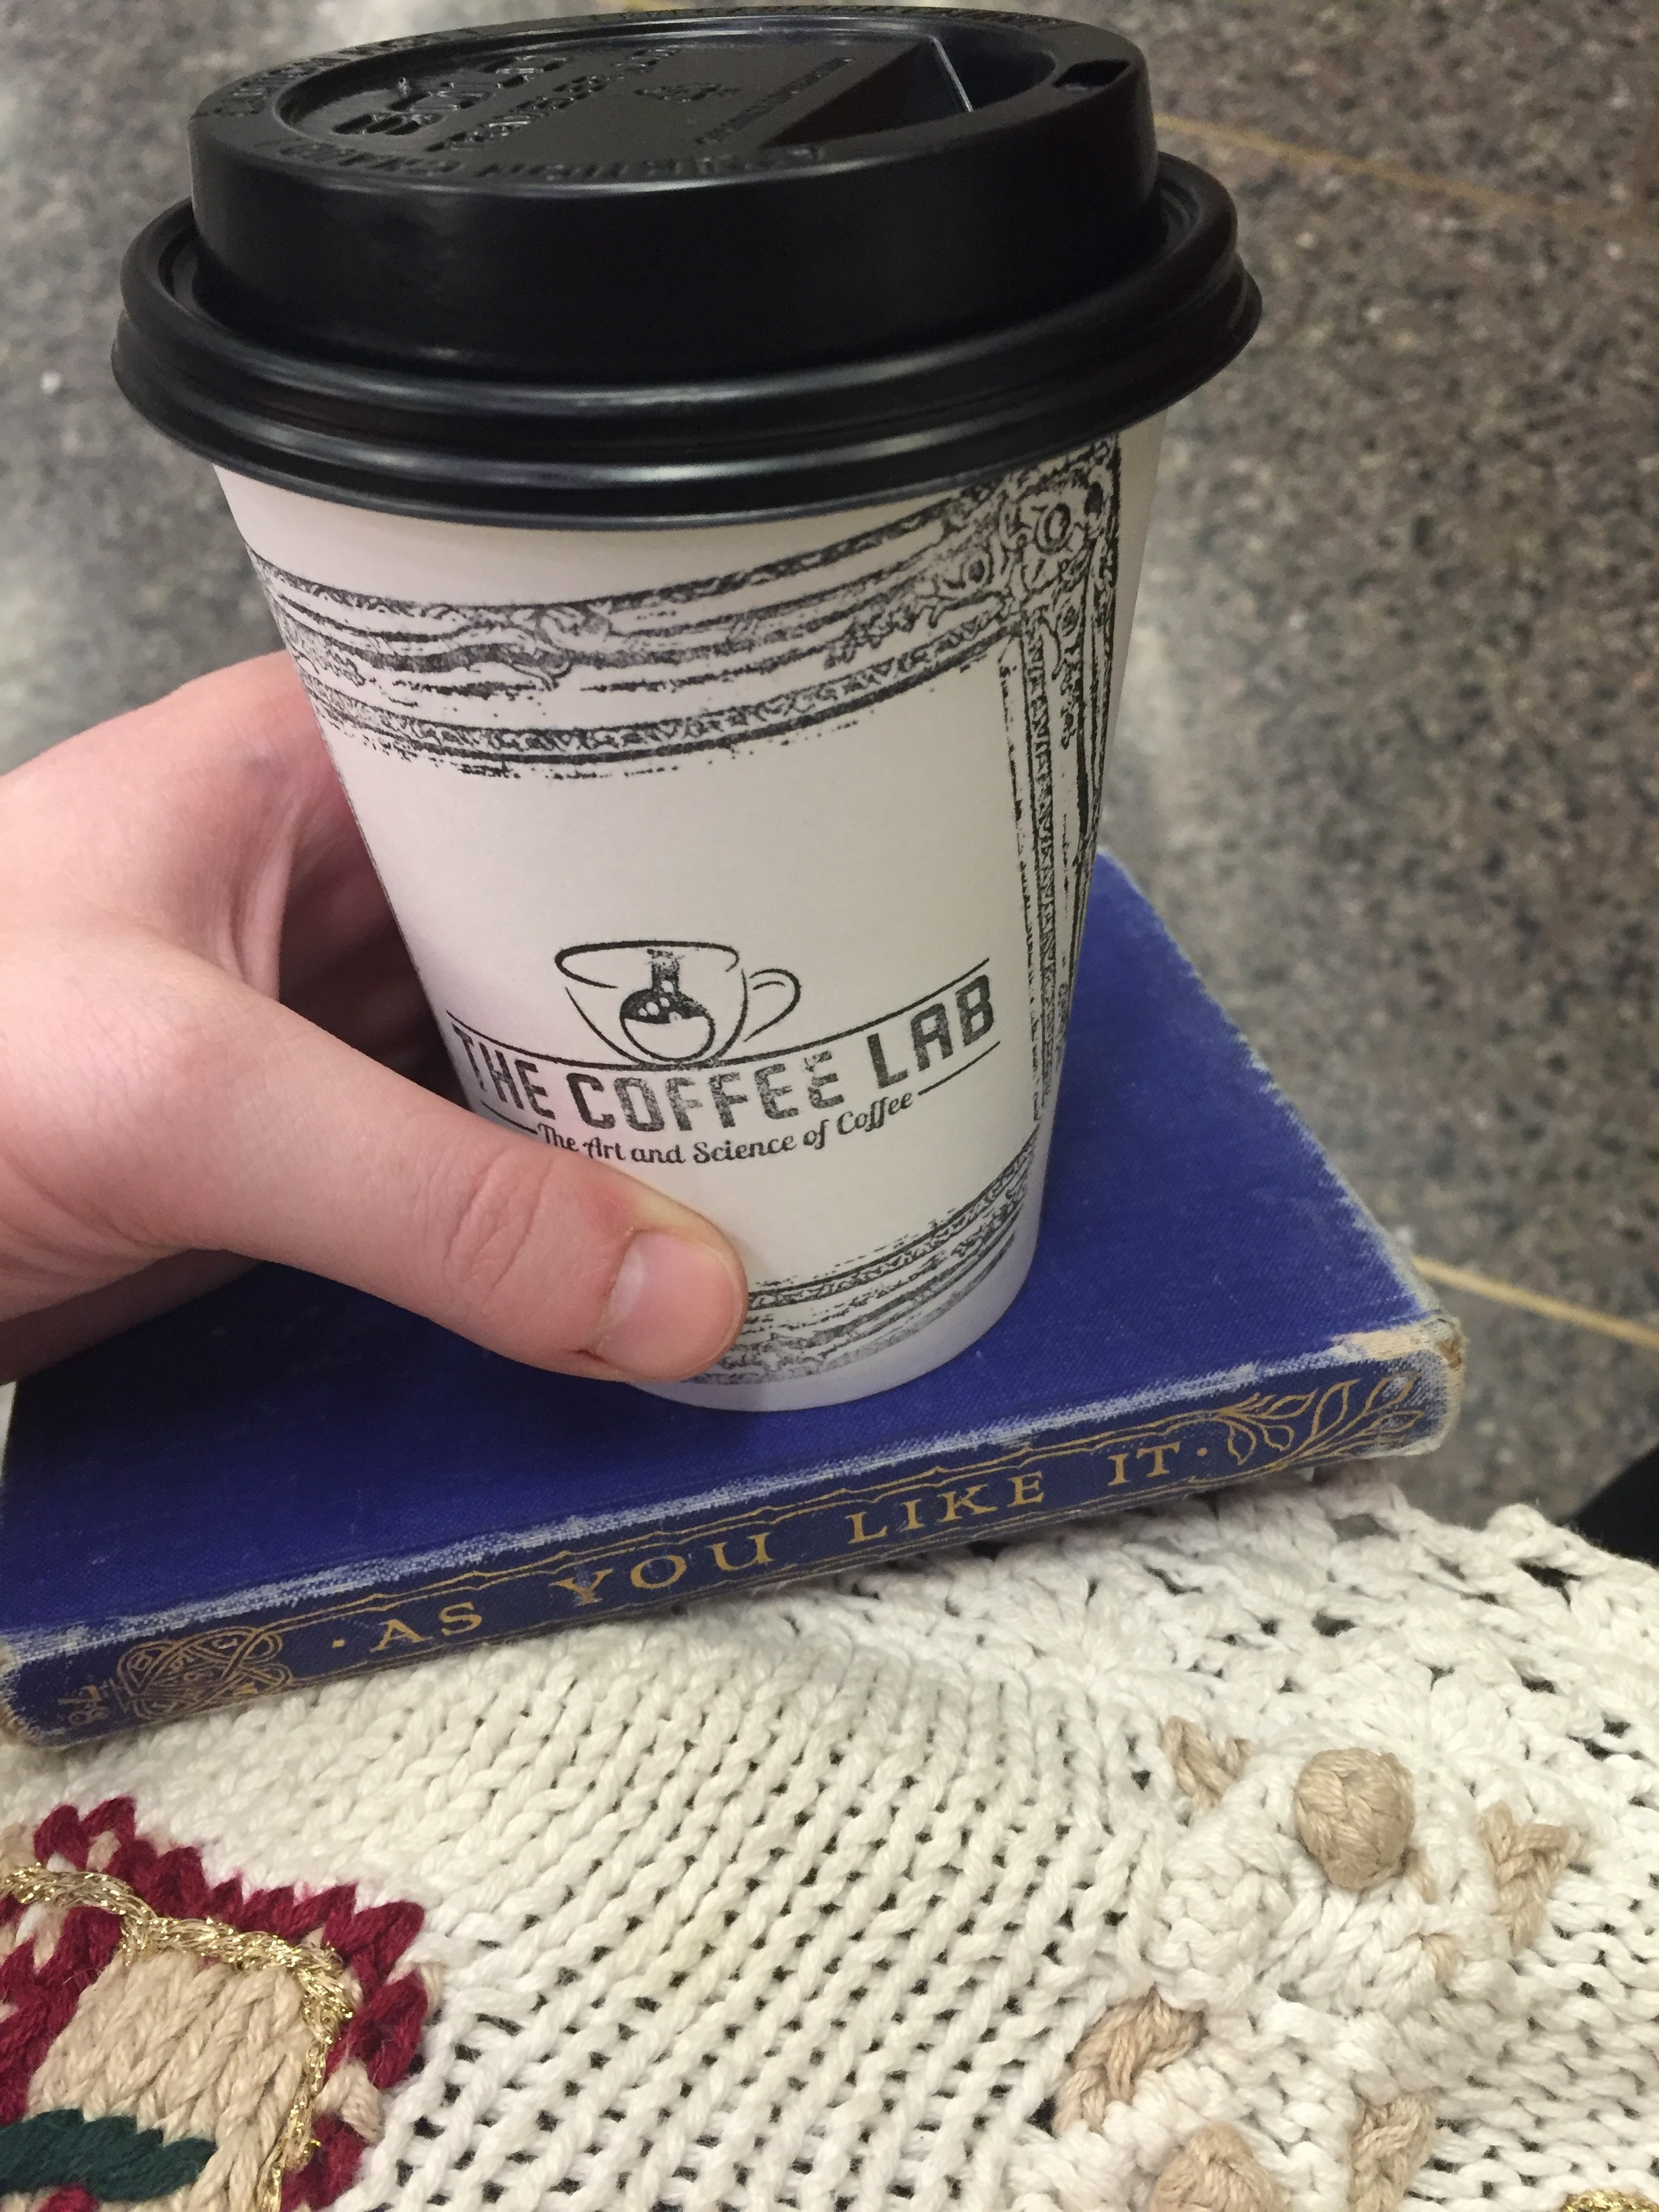 Pictured: Coffee Lab portable cup and As You Like It book